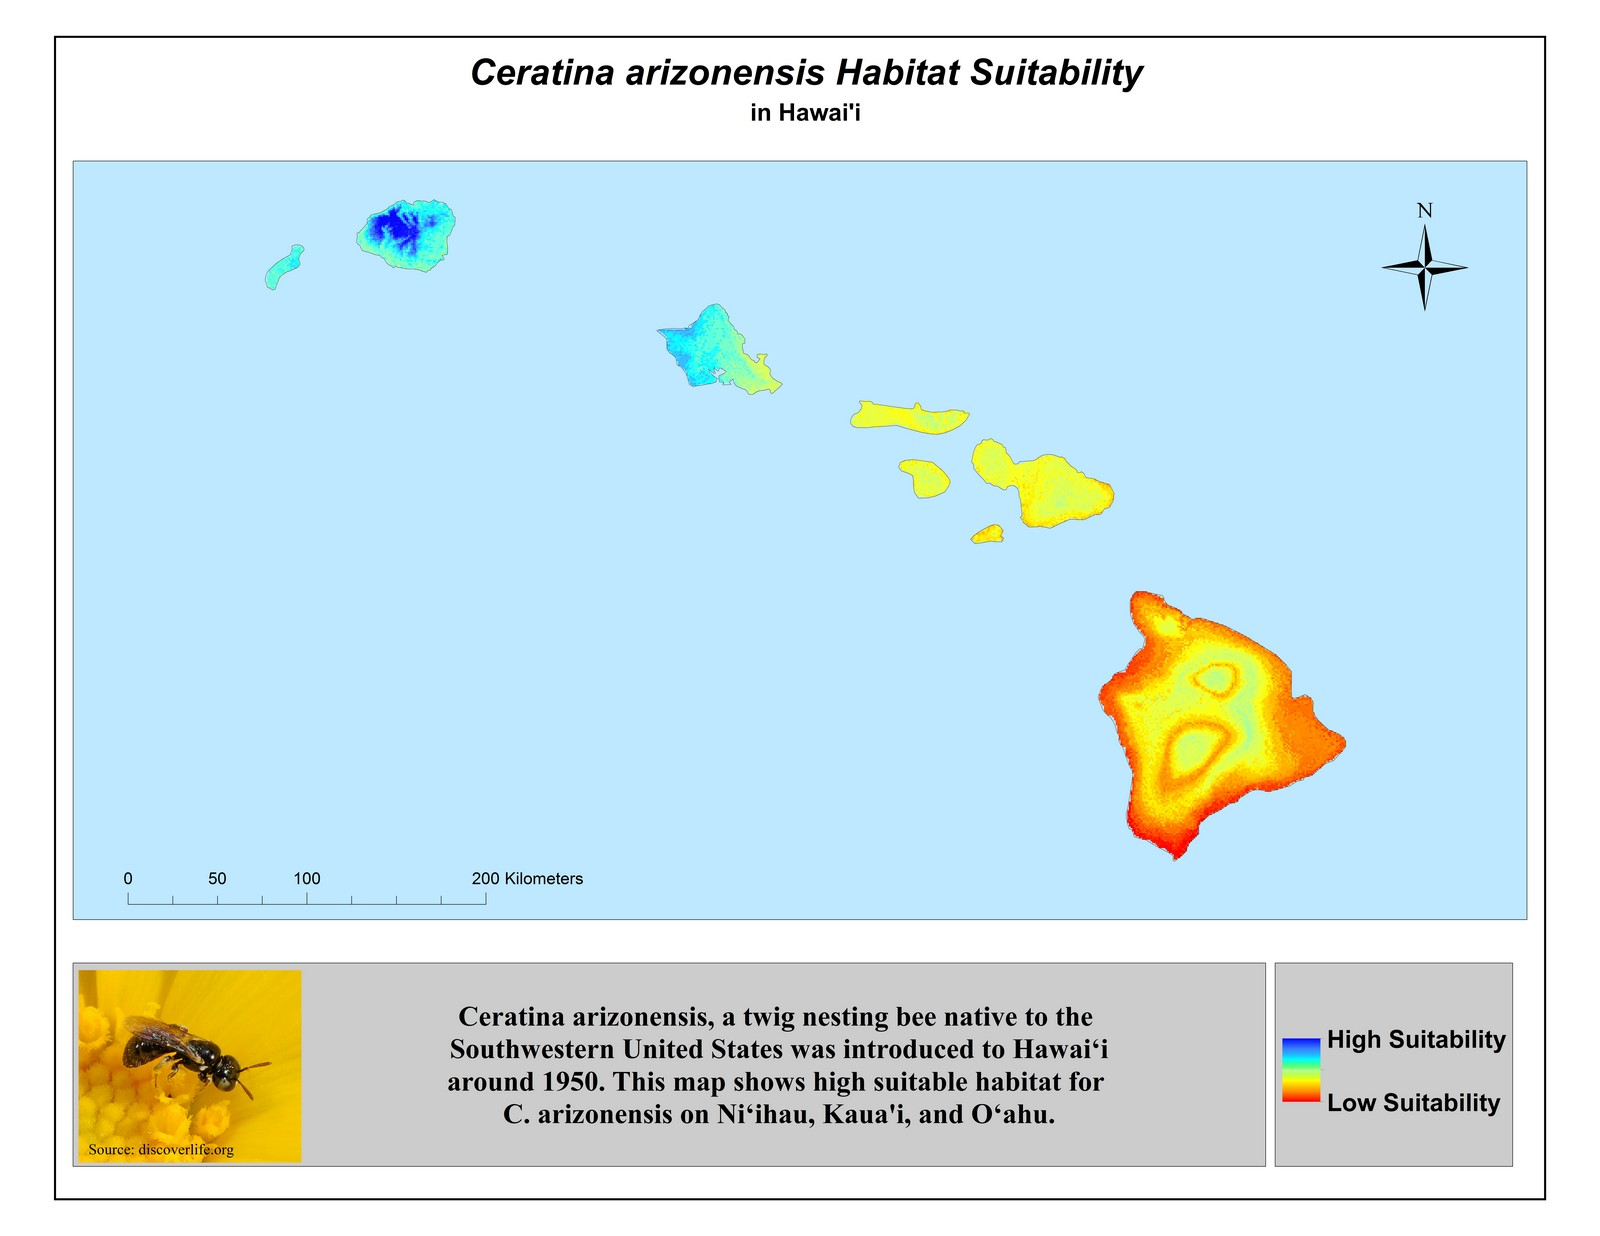 Map of Hawaii. Title: Ceratina arizonensis Habitat Suitability in Hawaii. Map is color coded to show high and low suitability islands. At bottom, the words: Ceratiina arizonensis, a twig nesting bee native to the Southwestern United States was introduced to Hawaii around 1950. This map shows high suitable habitat for C. arizonensis on Niihau, Kauai, and Oahu. Photo of the bee in left bottom corner.